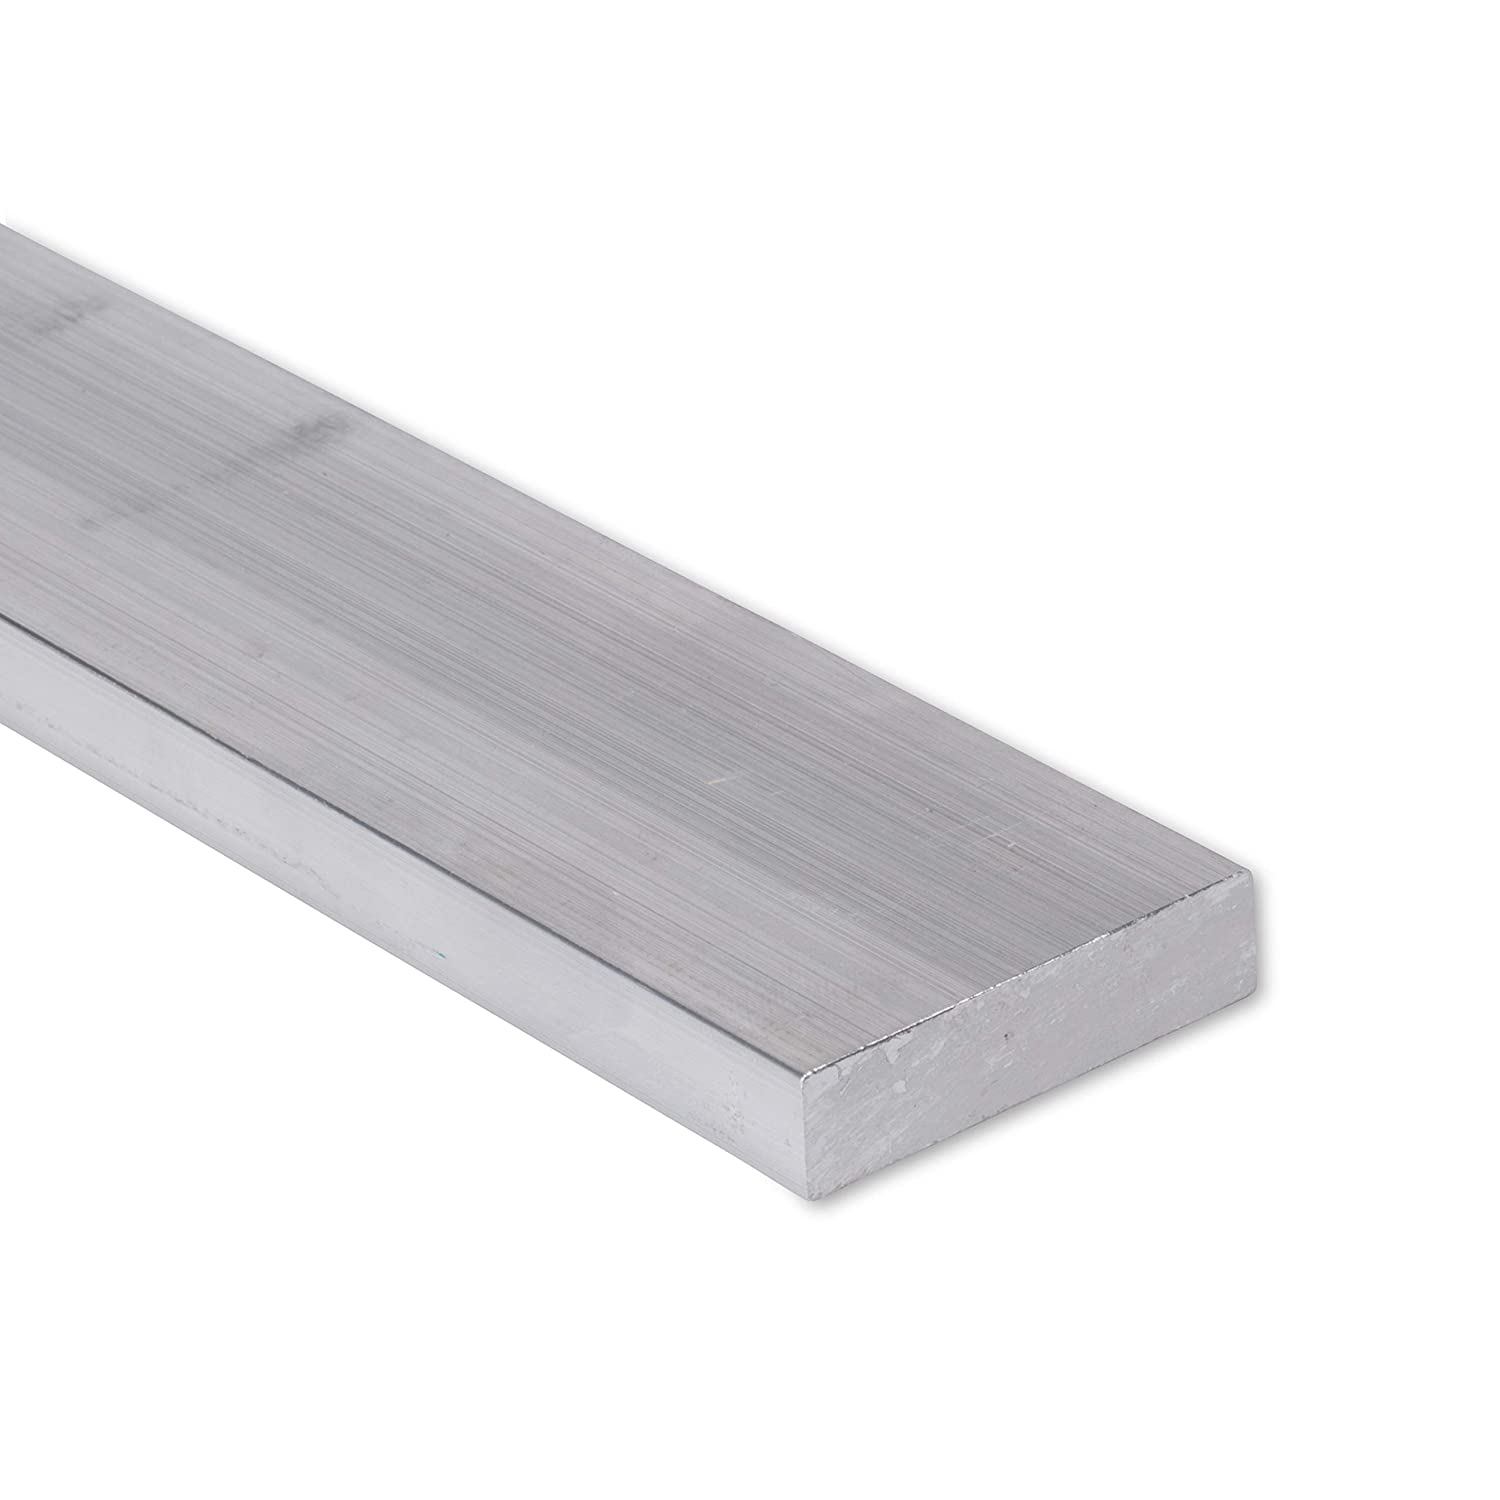 "6061 Plate 3//4/"" x 1-1//2/"" Aluminum Flat Bar T6511 Mill Stock 24/"" Length 0.75/"""